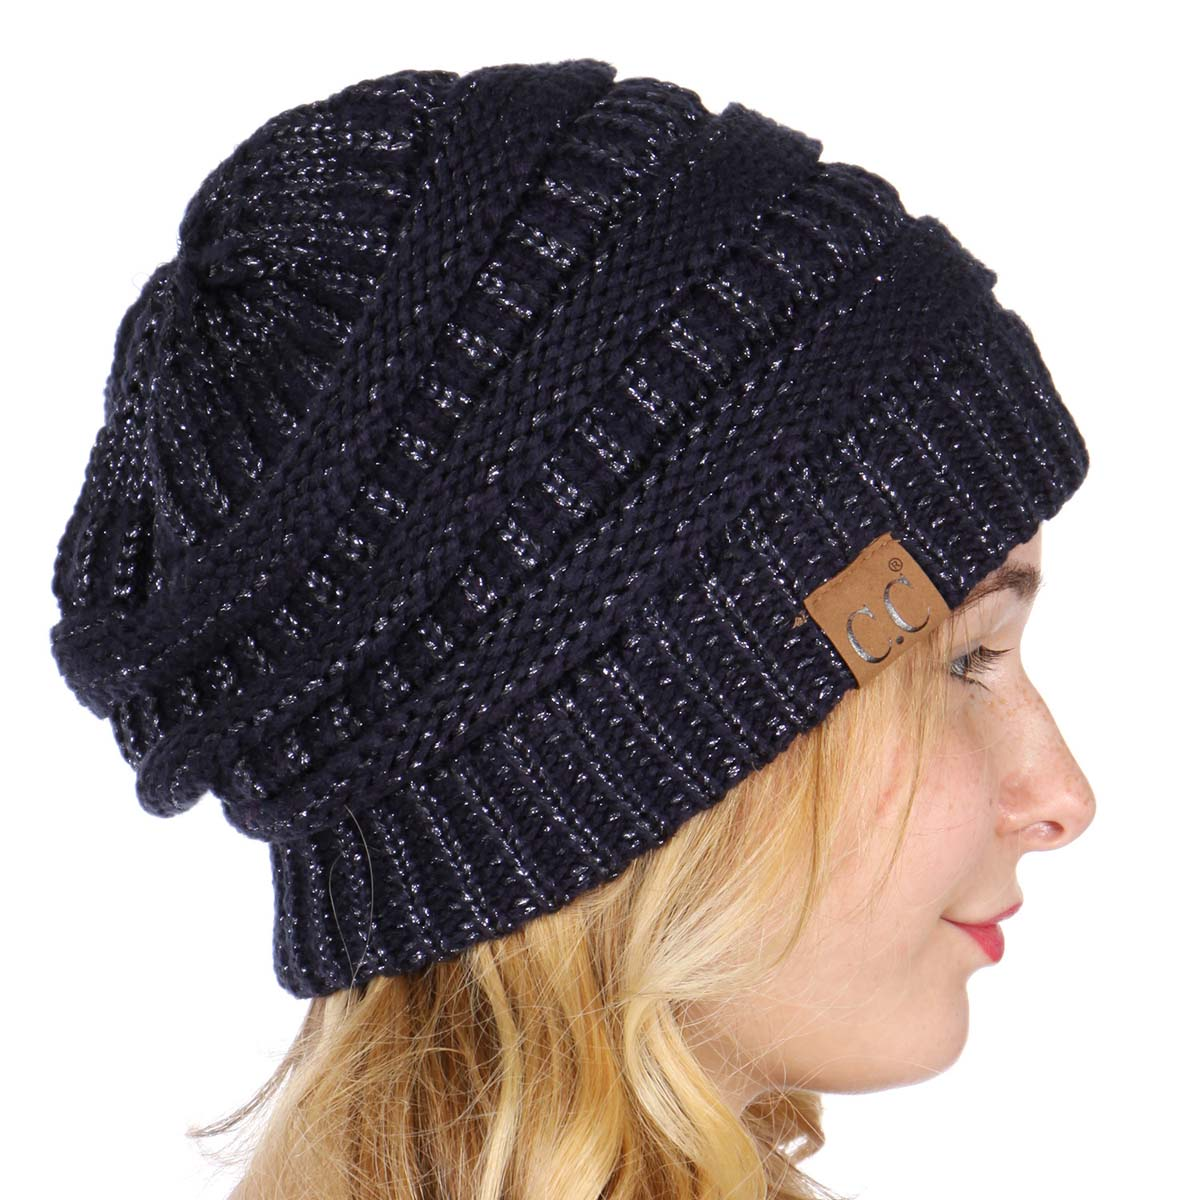 b2b9fd42ff7 ... real navy metallic yarn knit cc beanie hat e63e9 1c21d